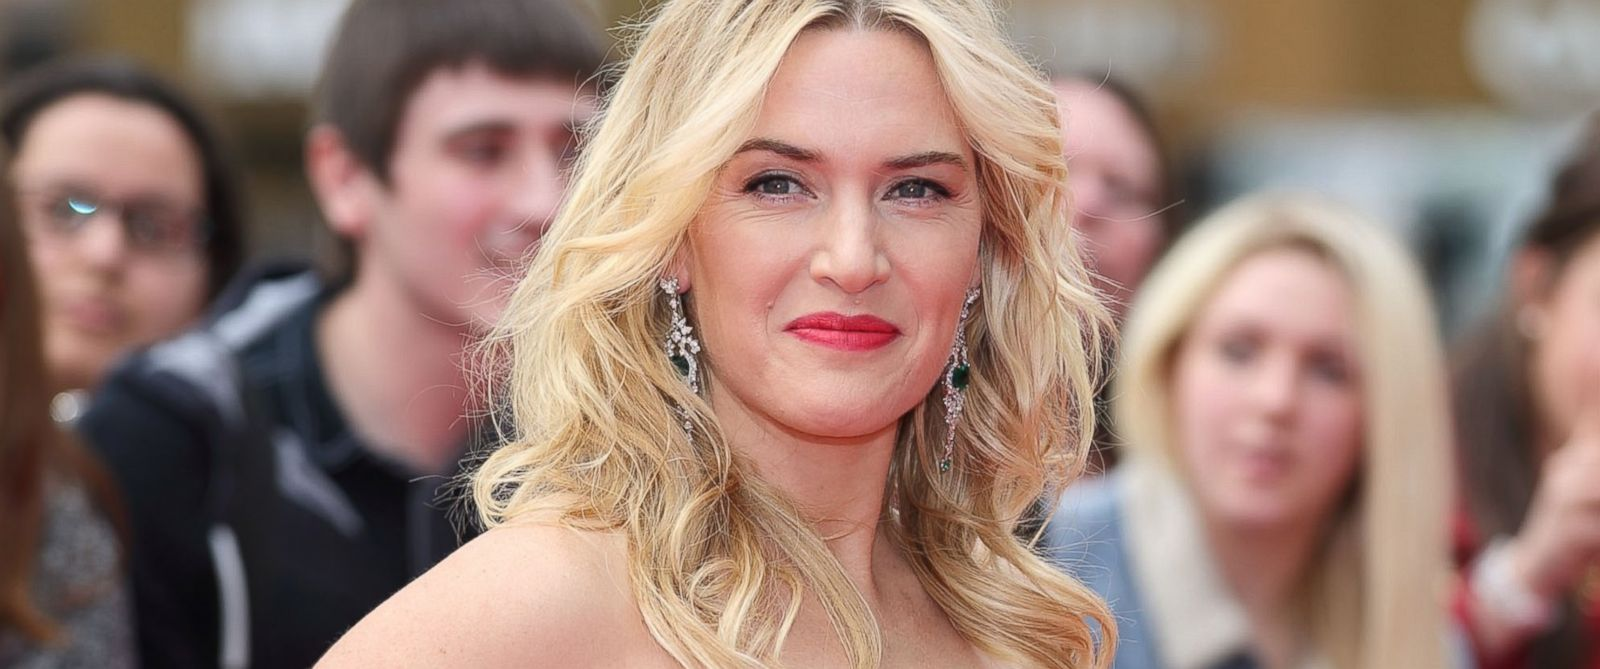 """PHOTO: Kate Winslet attends the European premiere of """"Divergent"""" at Odeon Leicester Square in London"""